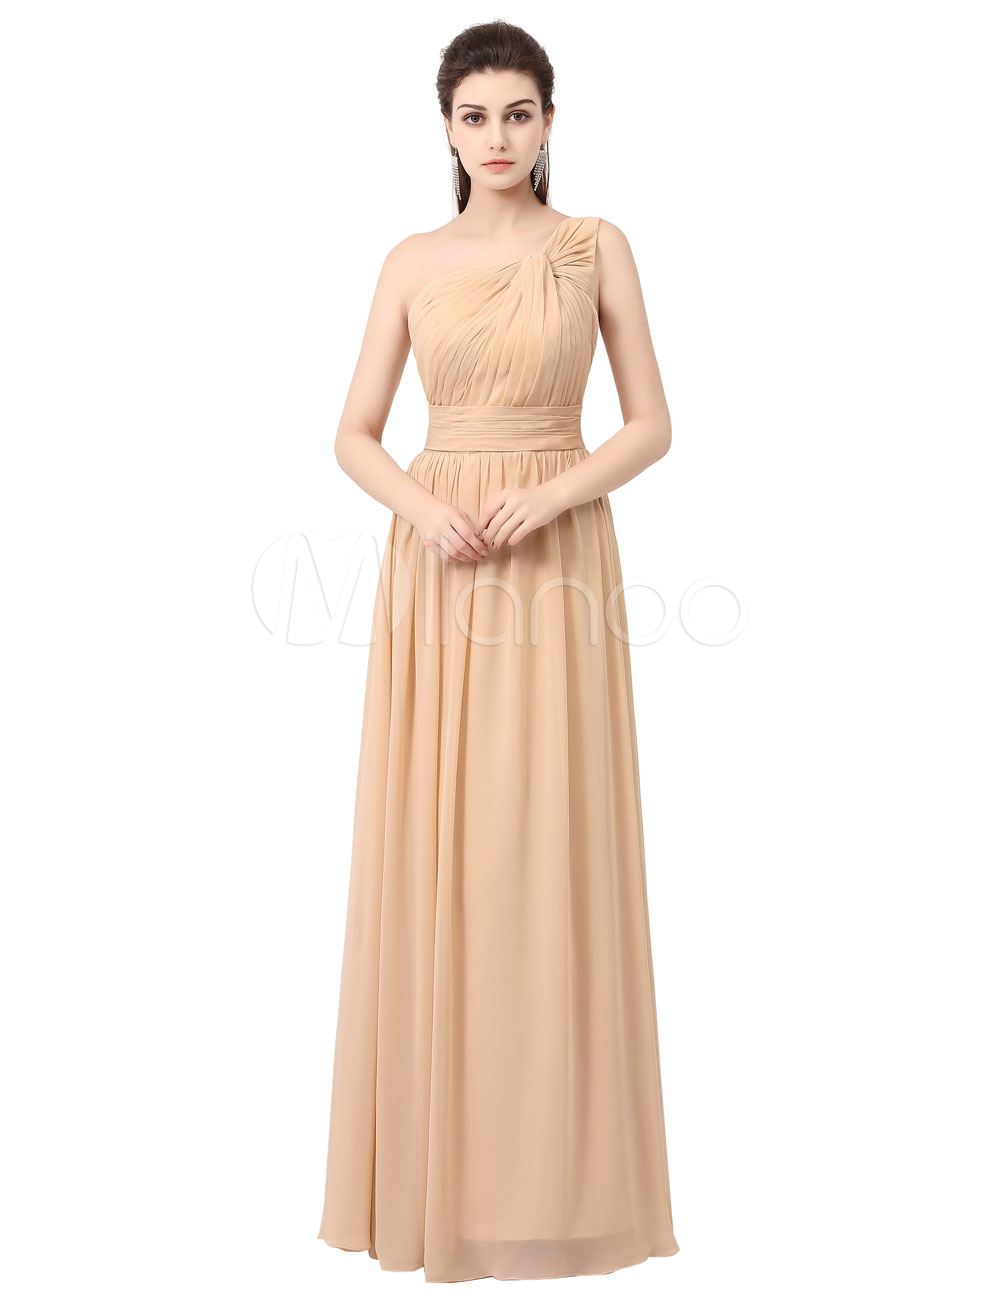 Chiffon Bridesmaid Dress Long Prom Dress Champagne One Shoulder Knotted A Line Maxi Party Dress (Wedding) photo